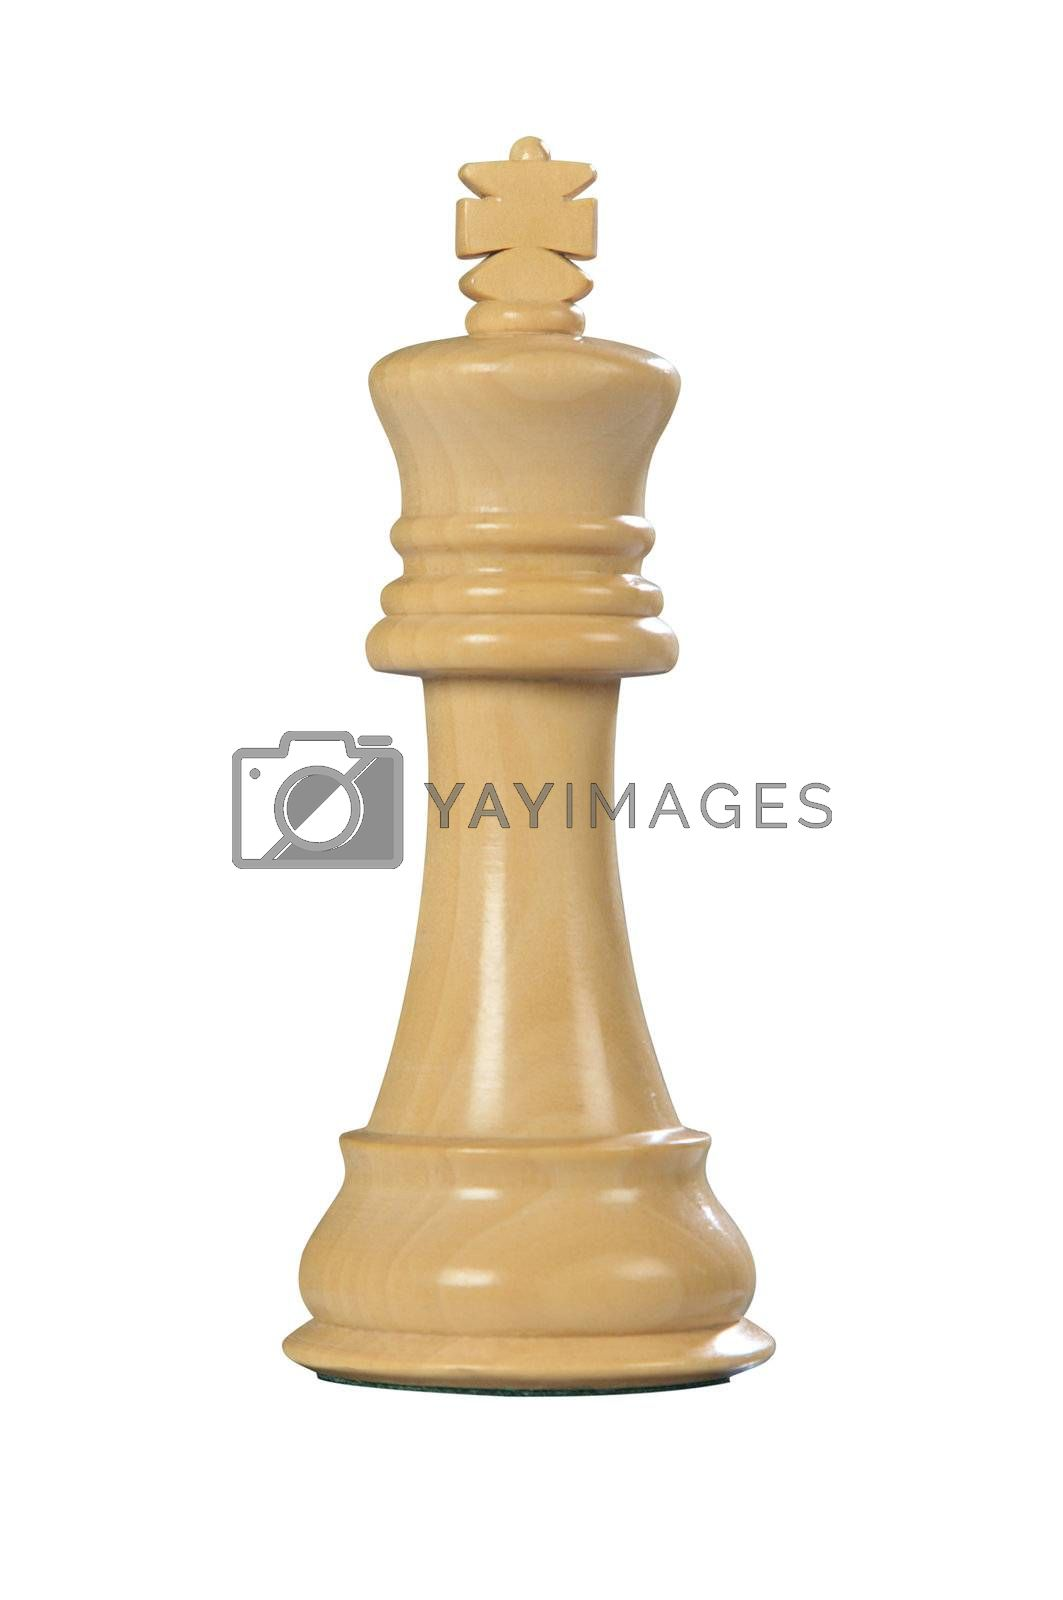 White wooden king - one of 12 different chess pieces